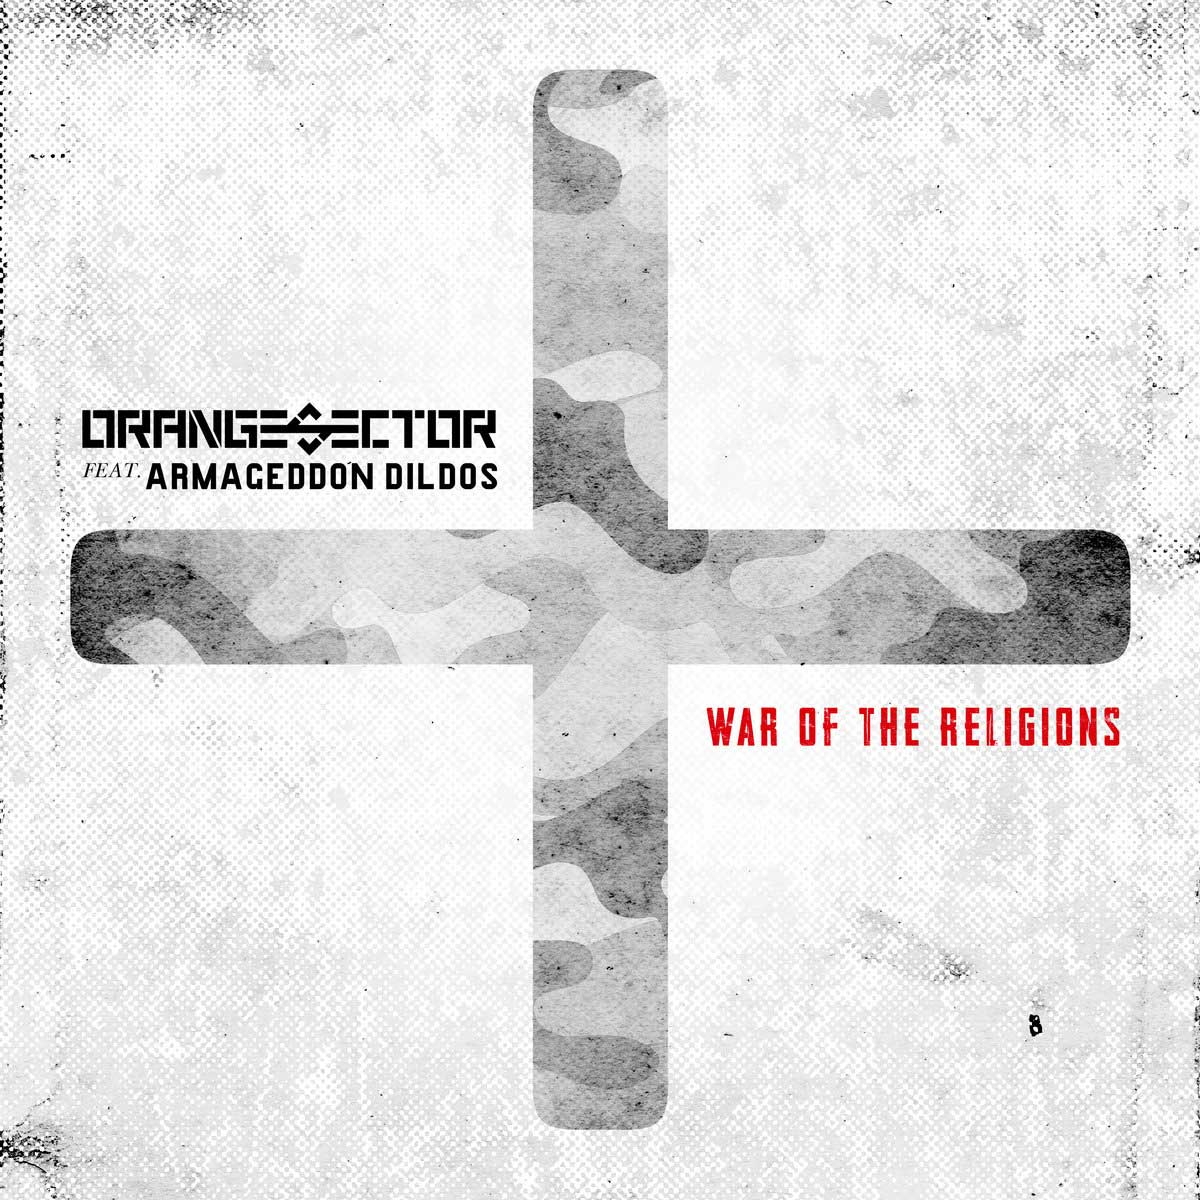 Orange Sector - War Of The Religions (feat. Armageddon Dildos) - Orange Sector - War Of The Religions (feat. Armageddon Dildos)